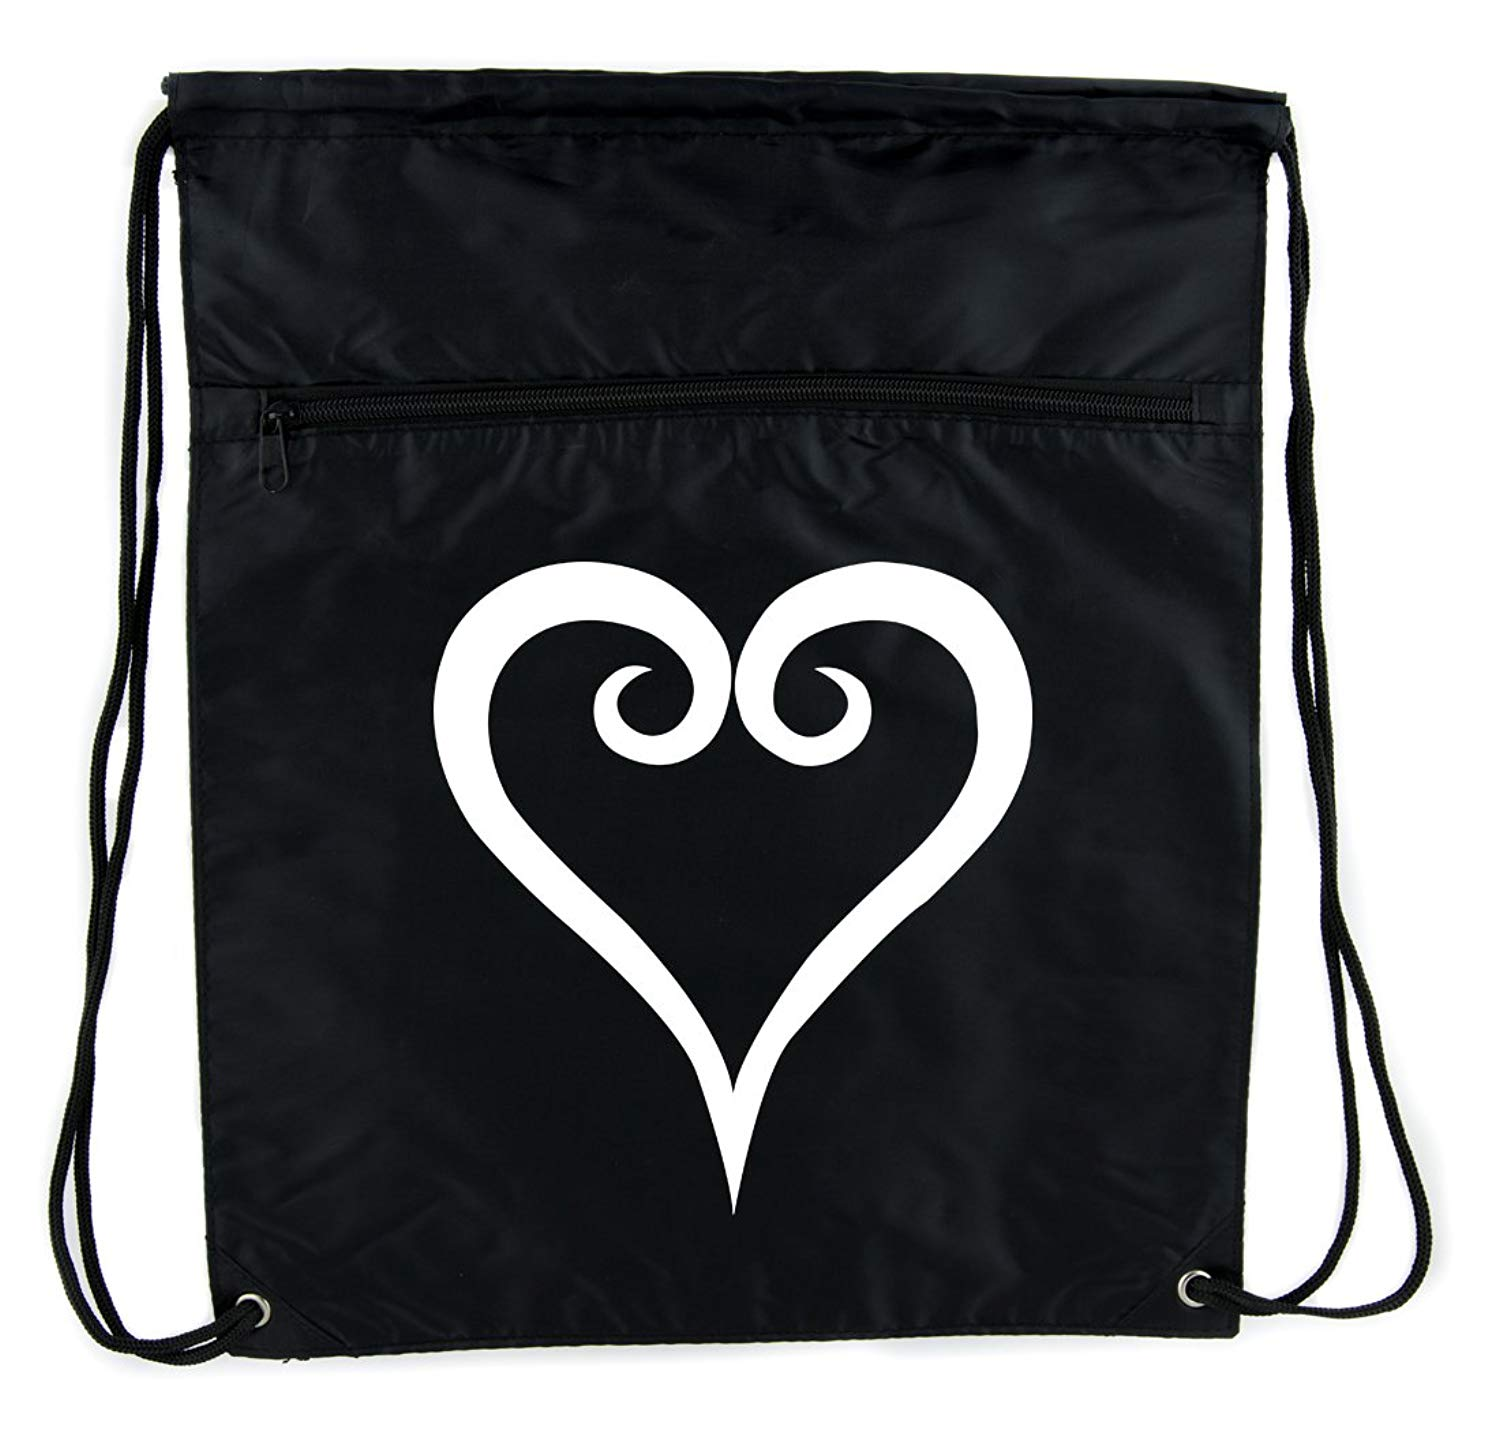 c296003d0d Get Quotations · Kingdom Hearts Style Cinch Bag Drawstring Backpack Anime  Gaming Alternative Clothing